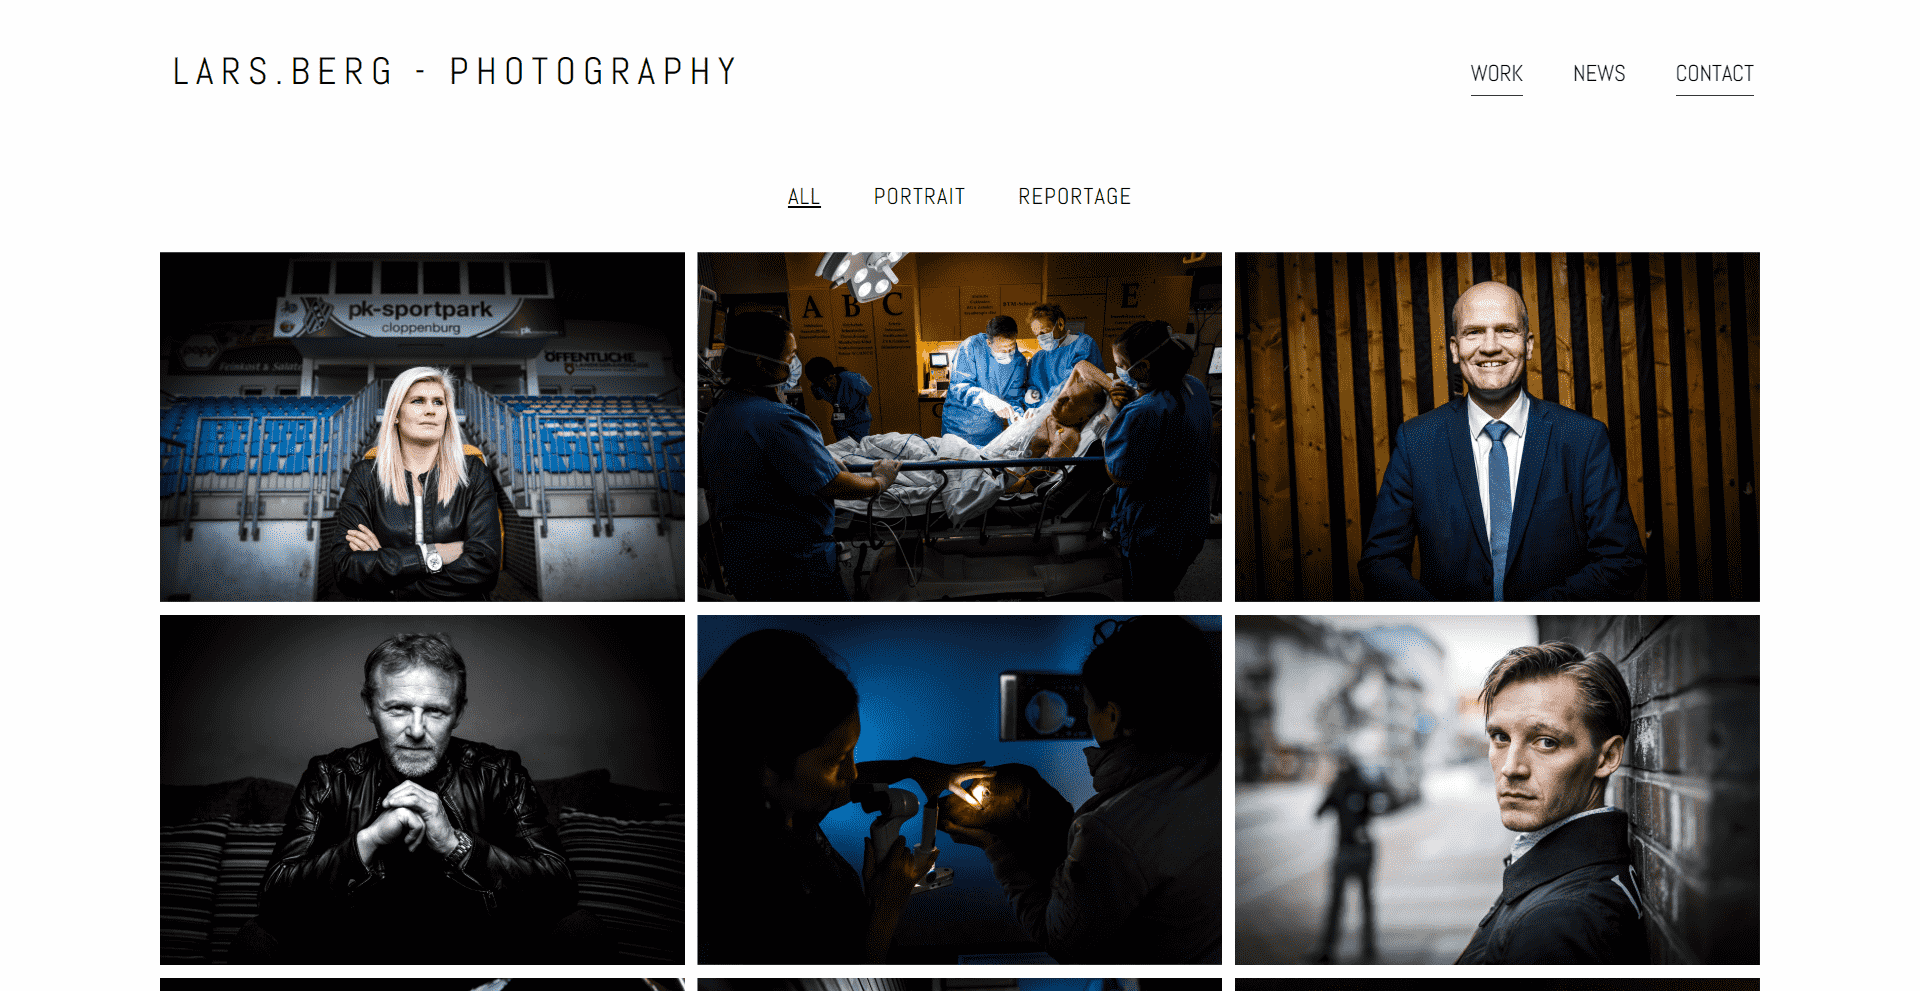 Lars Berg - Photography - WordPress Webdesign Referenz